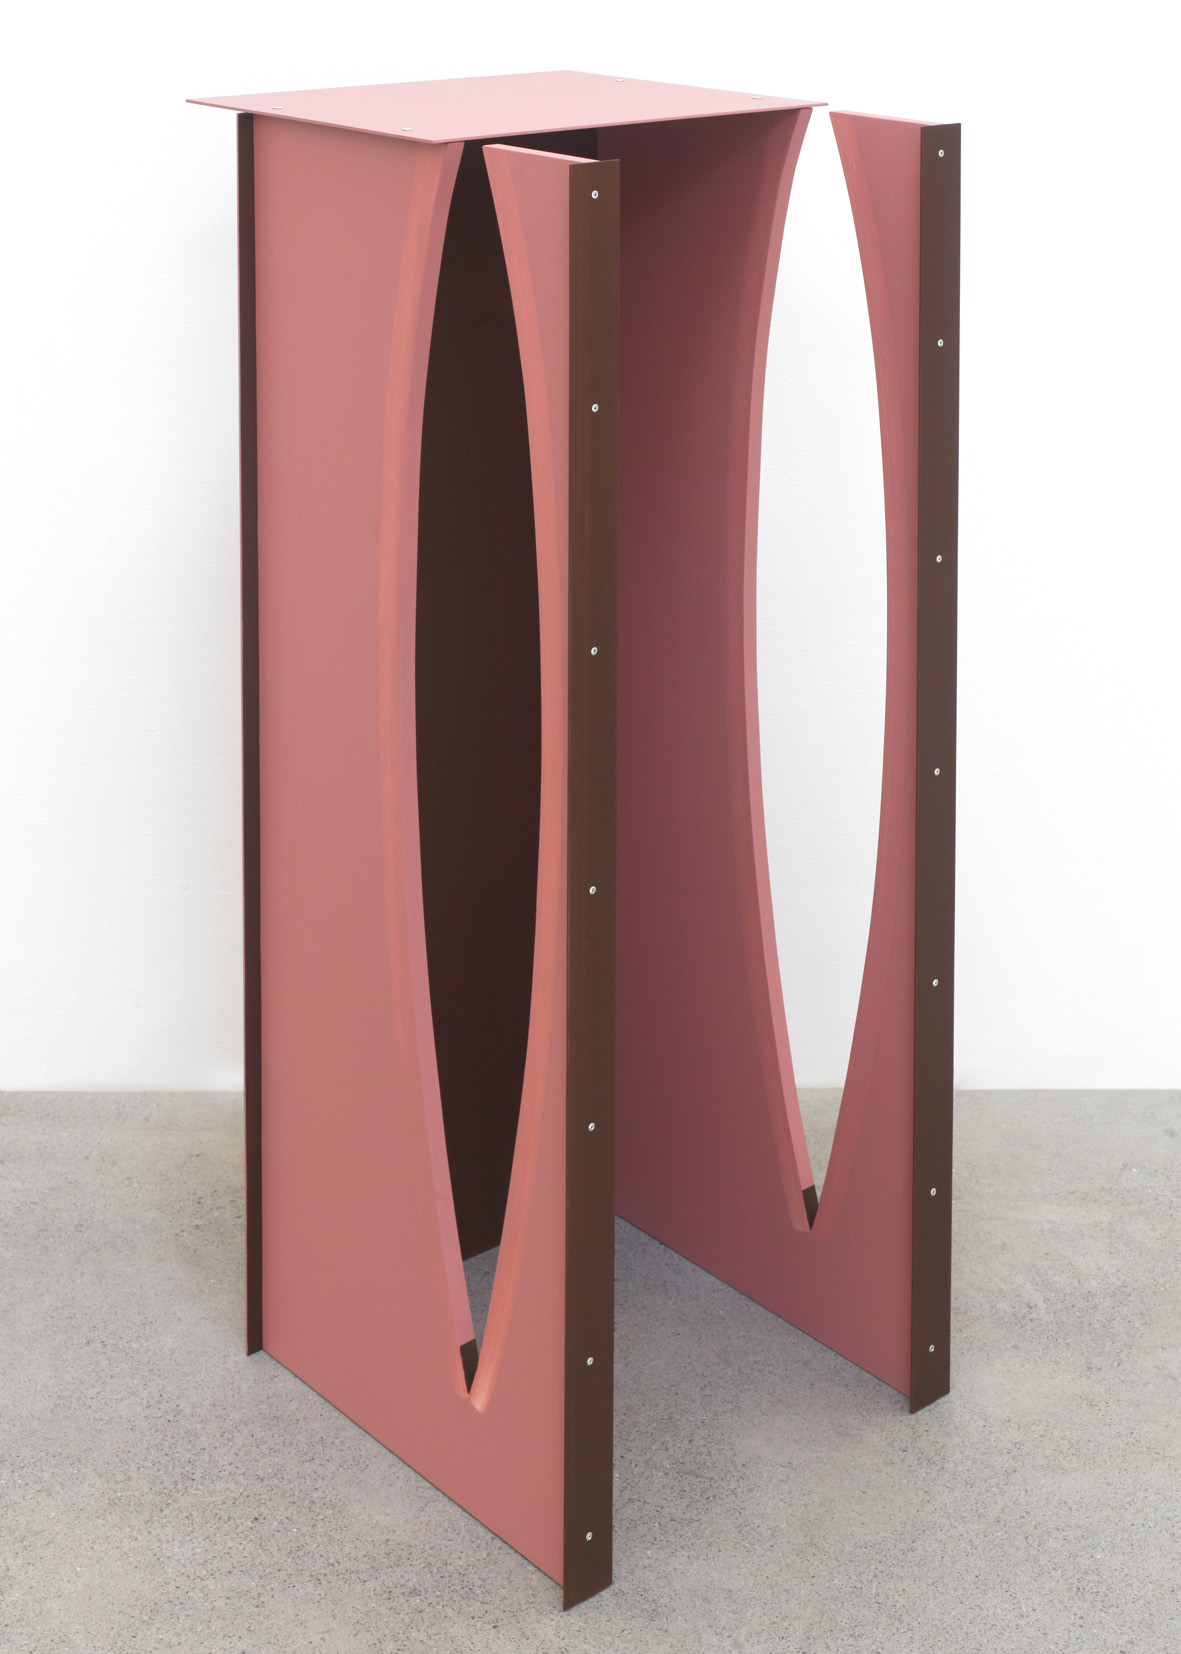 High Back (No Seat) 2016 Birch plywood, euro-beech hardwood, aluminum, aluminum rivets, acrylic 119.3 x 45.7 x 50.8 cm / 47 x 18 x 20 in